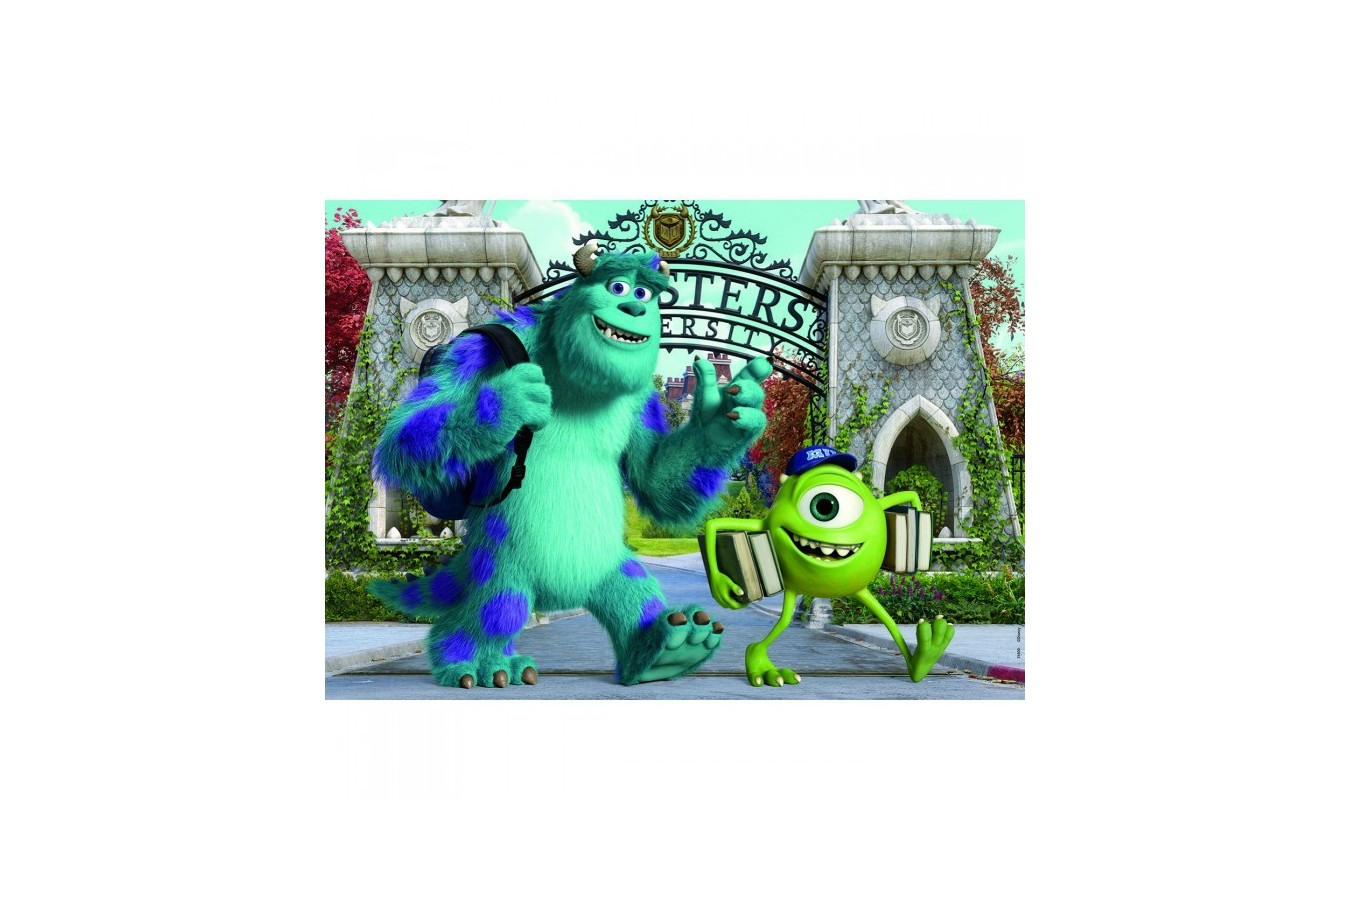 Puzzle din lemn Educa - Monsters Inc: Monsters University, 2x25 piese (15607)